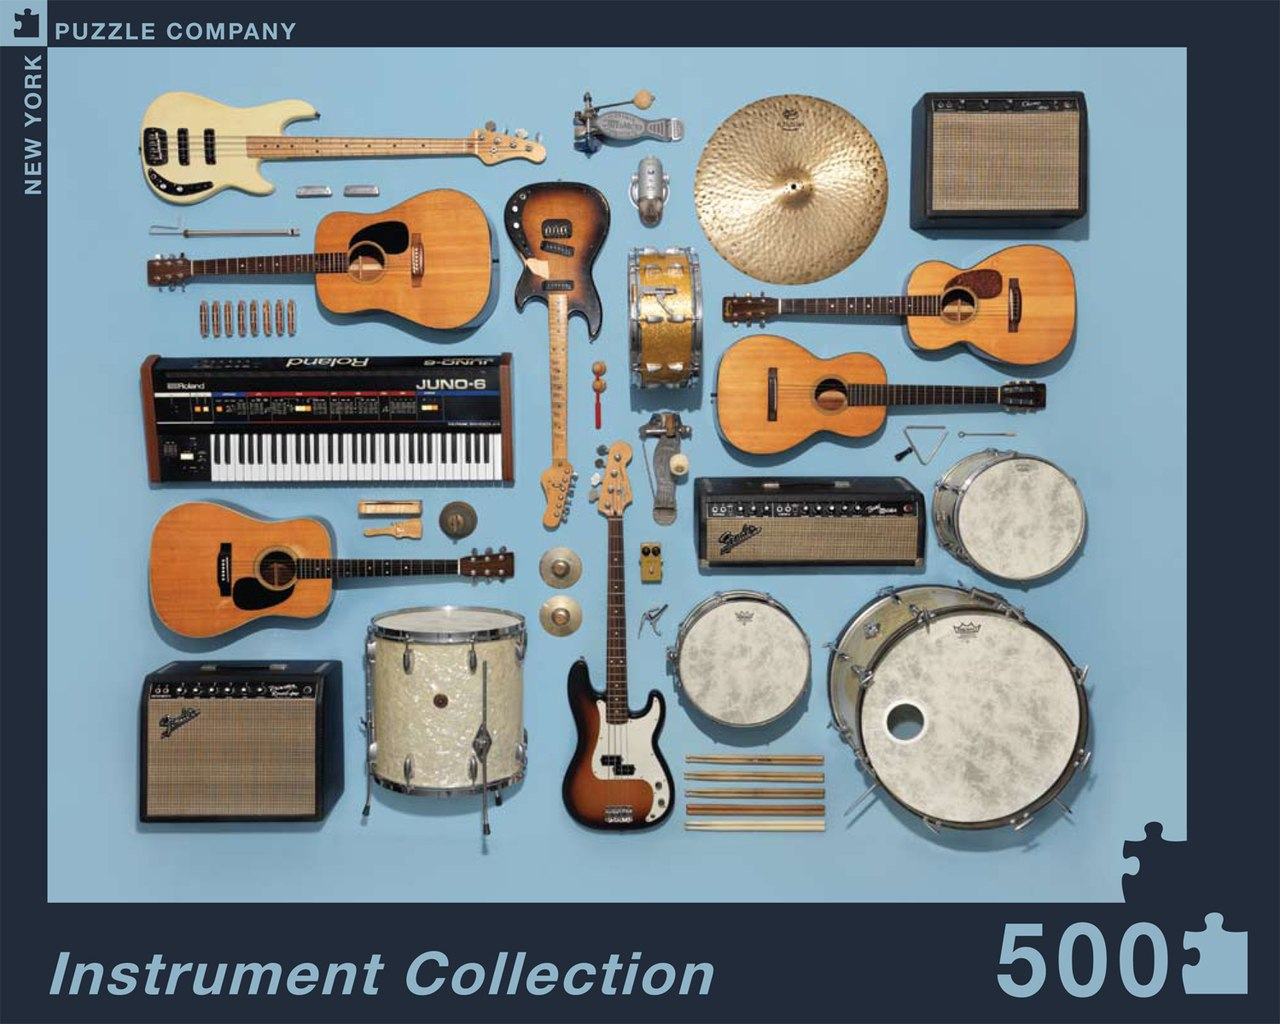 Musical Instruments - 500pc Jigsaw Puzzle by New York Puzzle Company